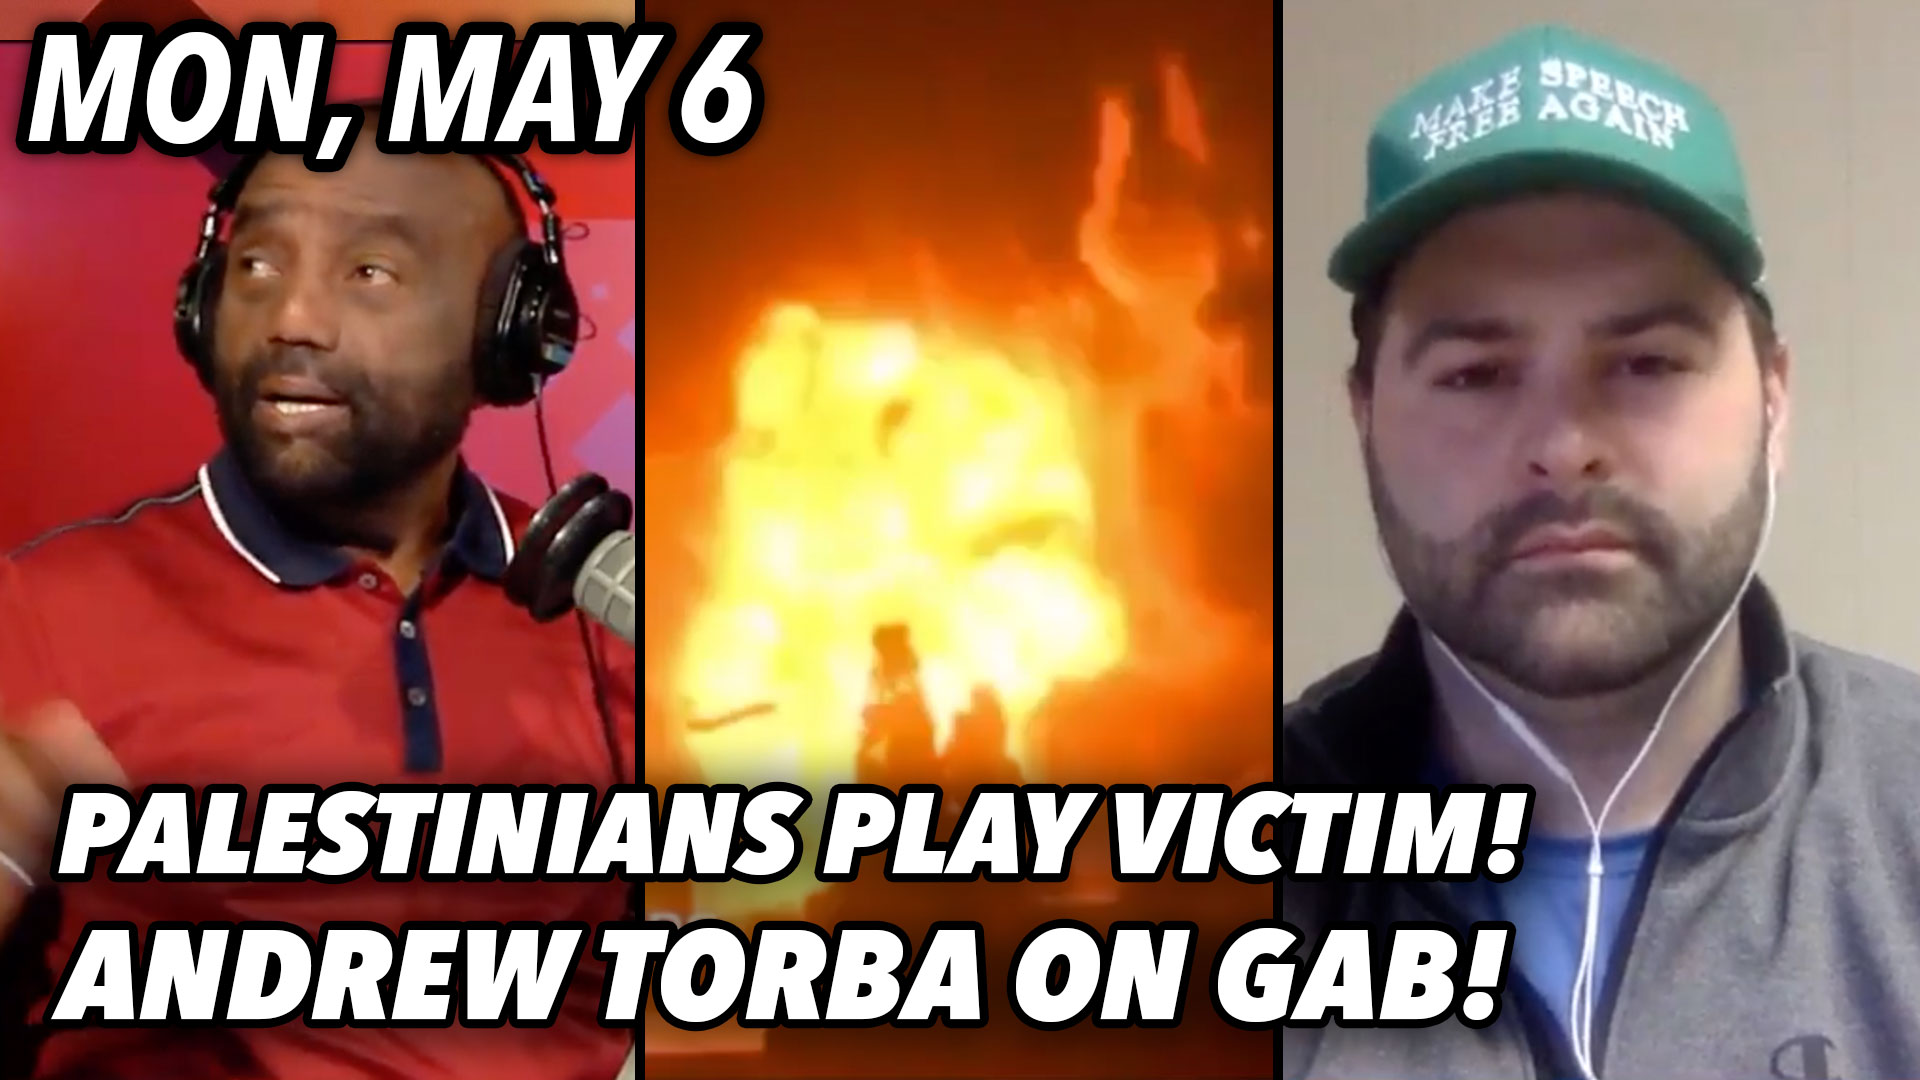 Thumbnail from The Jesse Lee Peterson Show from  Monday, May 6, 2019